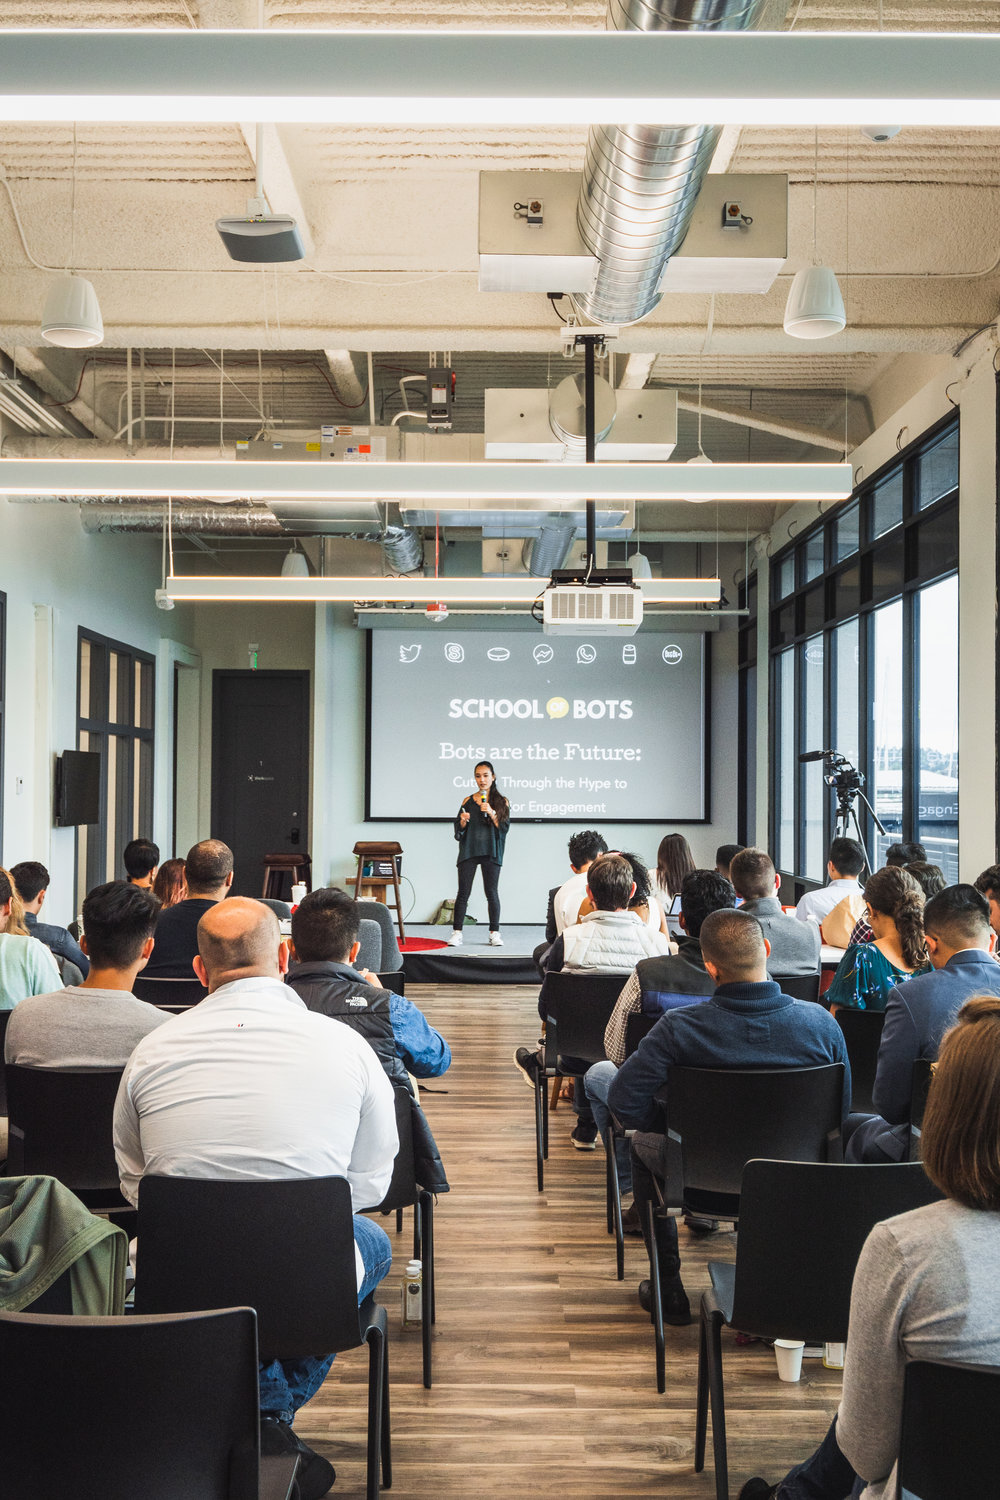 Social Impact + Entrepreneurship + Marketing - Impact Mentality is an event series and community focused at the intersection between social impact, marketing, and entrepreneurship. We believe that social impact can be brought through a company's product, service, and corporate culture.